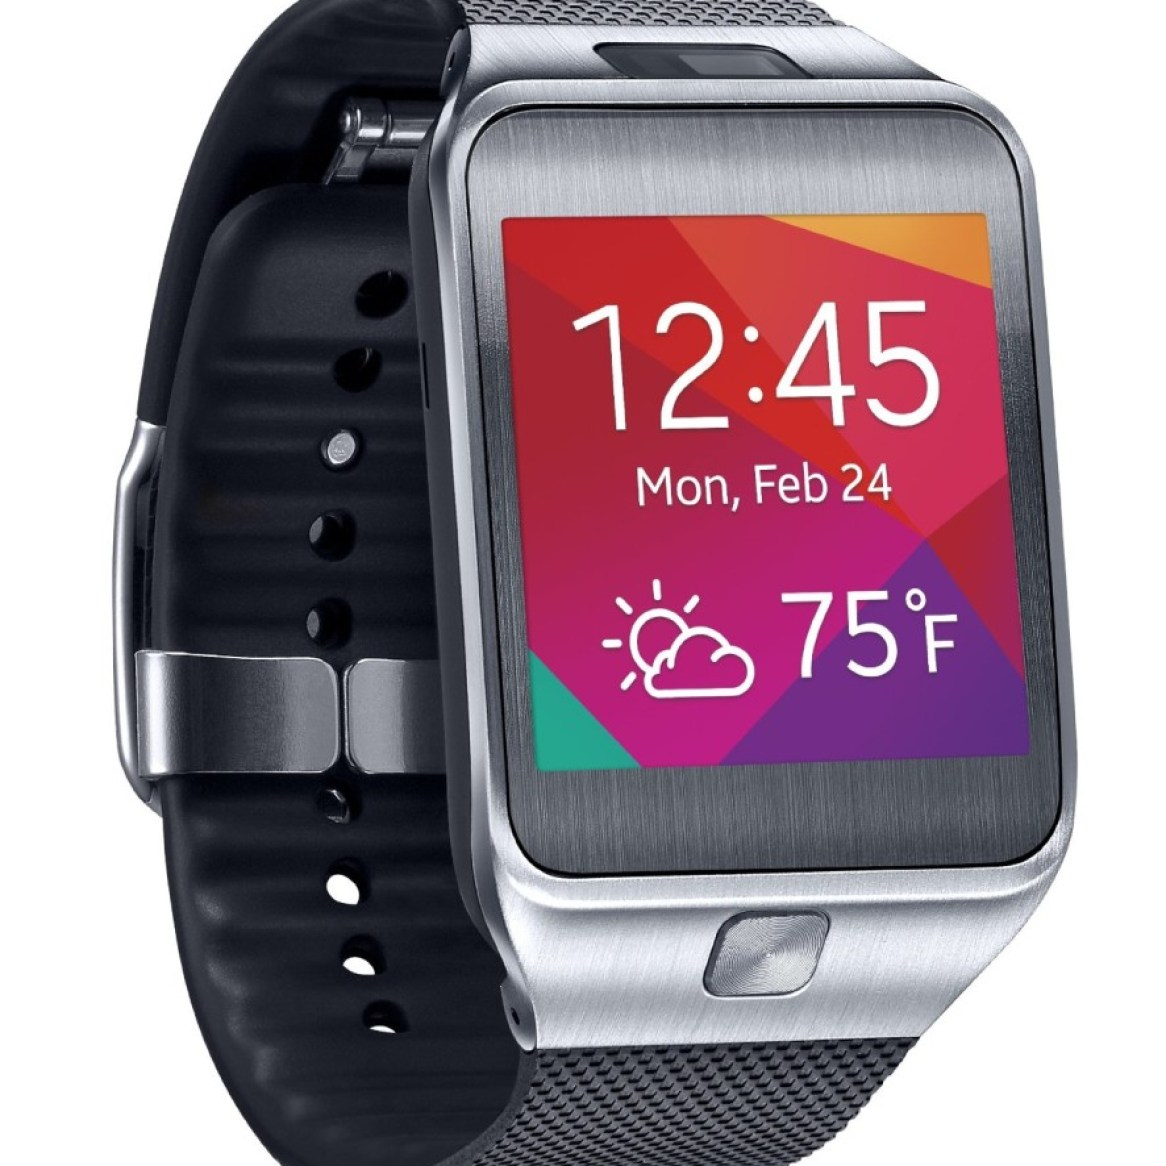 Samsung Gear 2 Smartwatch review